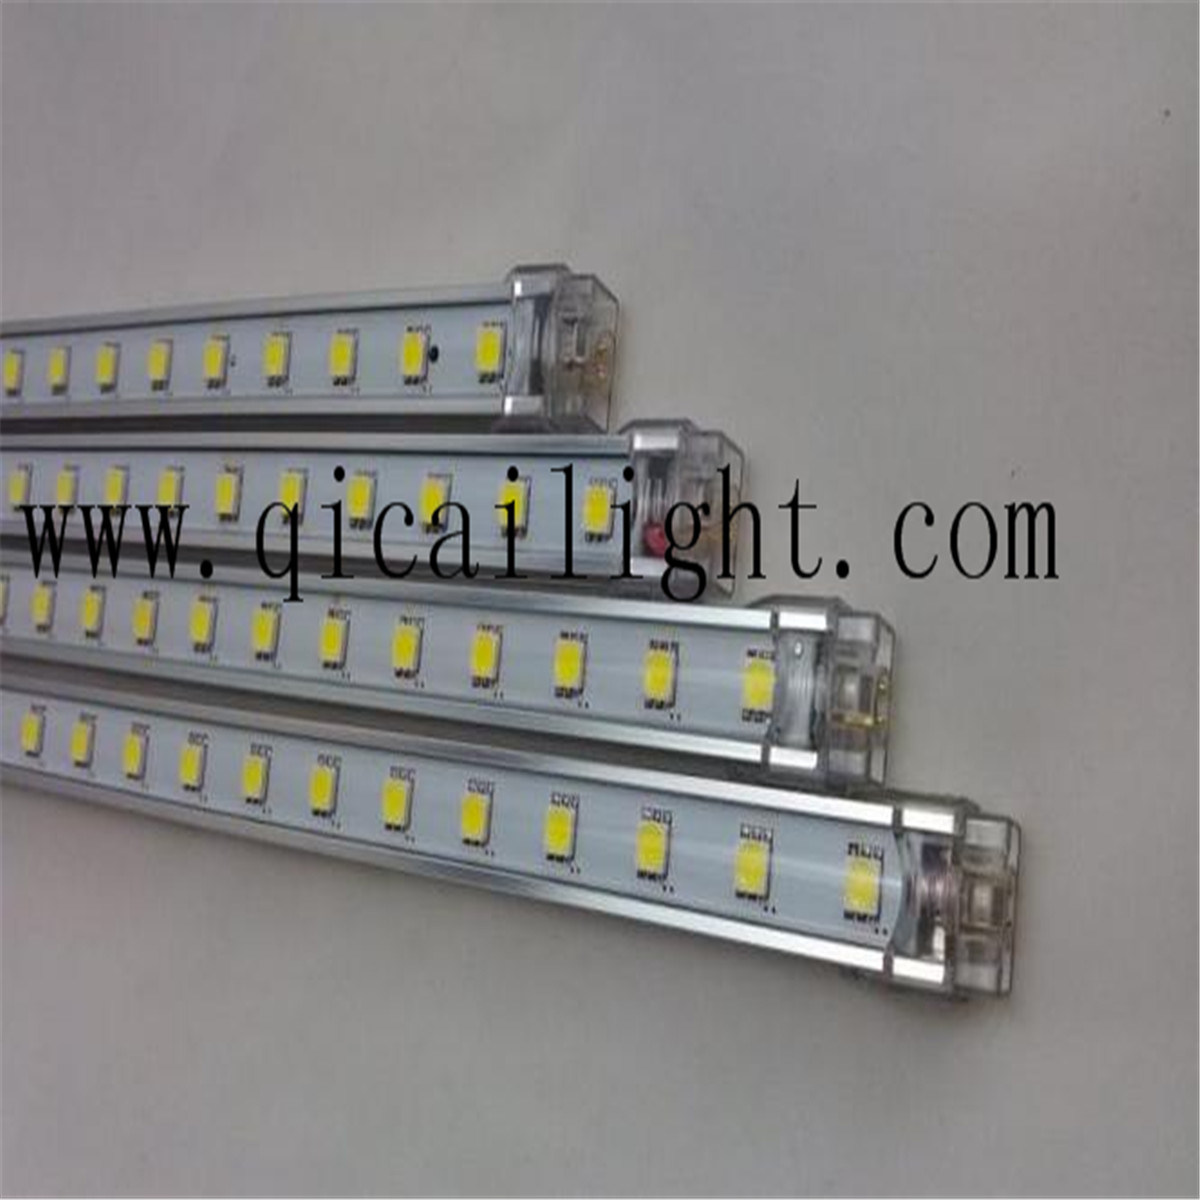 Fashionable Good Quality Warm Whtie DC12V 5630 LED Rigid Strip